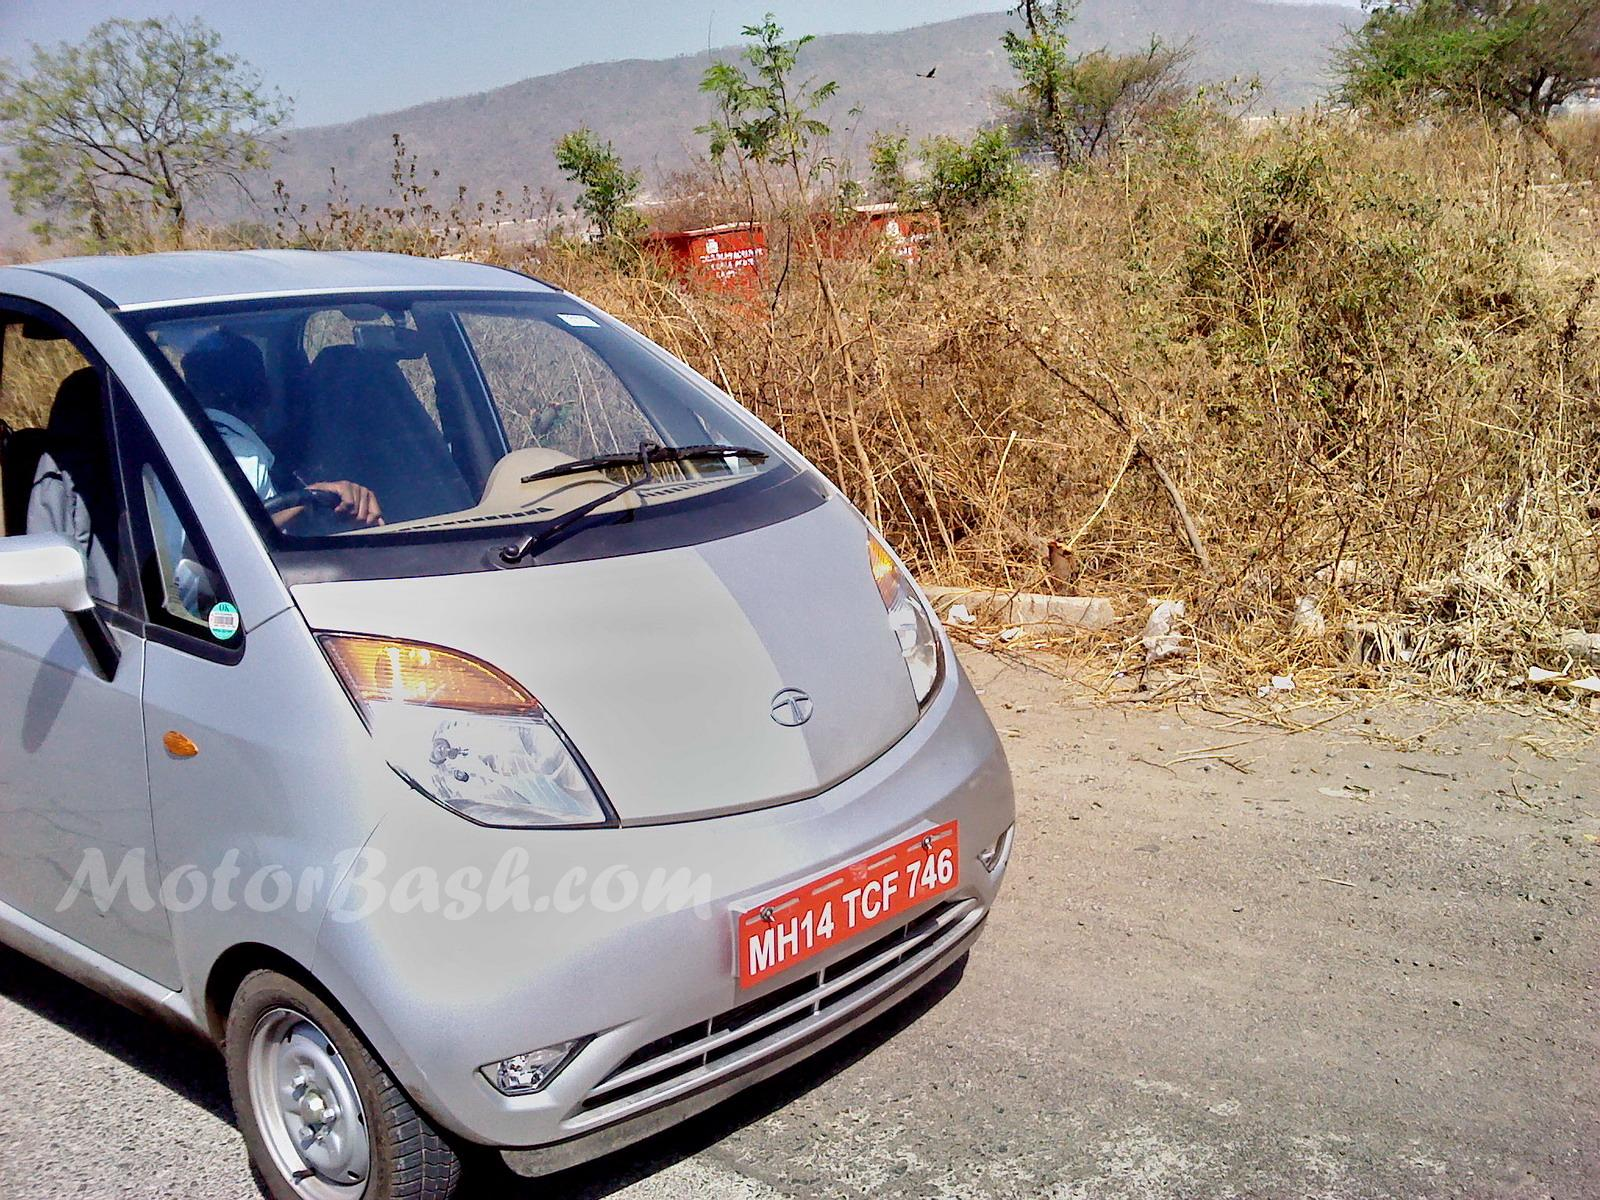 MotorBash TATA Nano 1 3 Tata Nano cars caught being tested in Pune